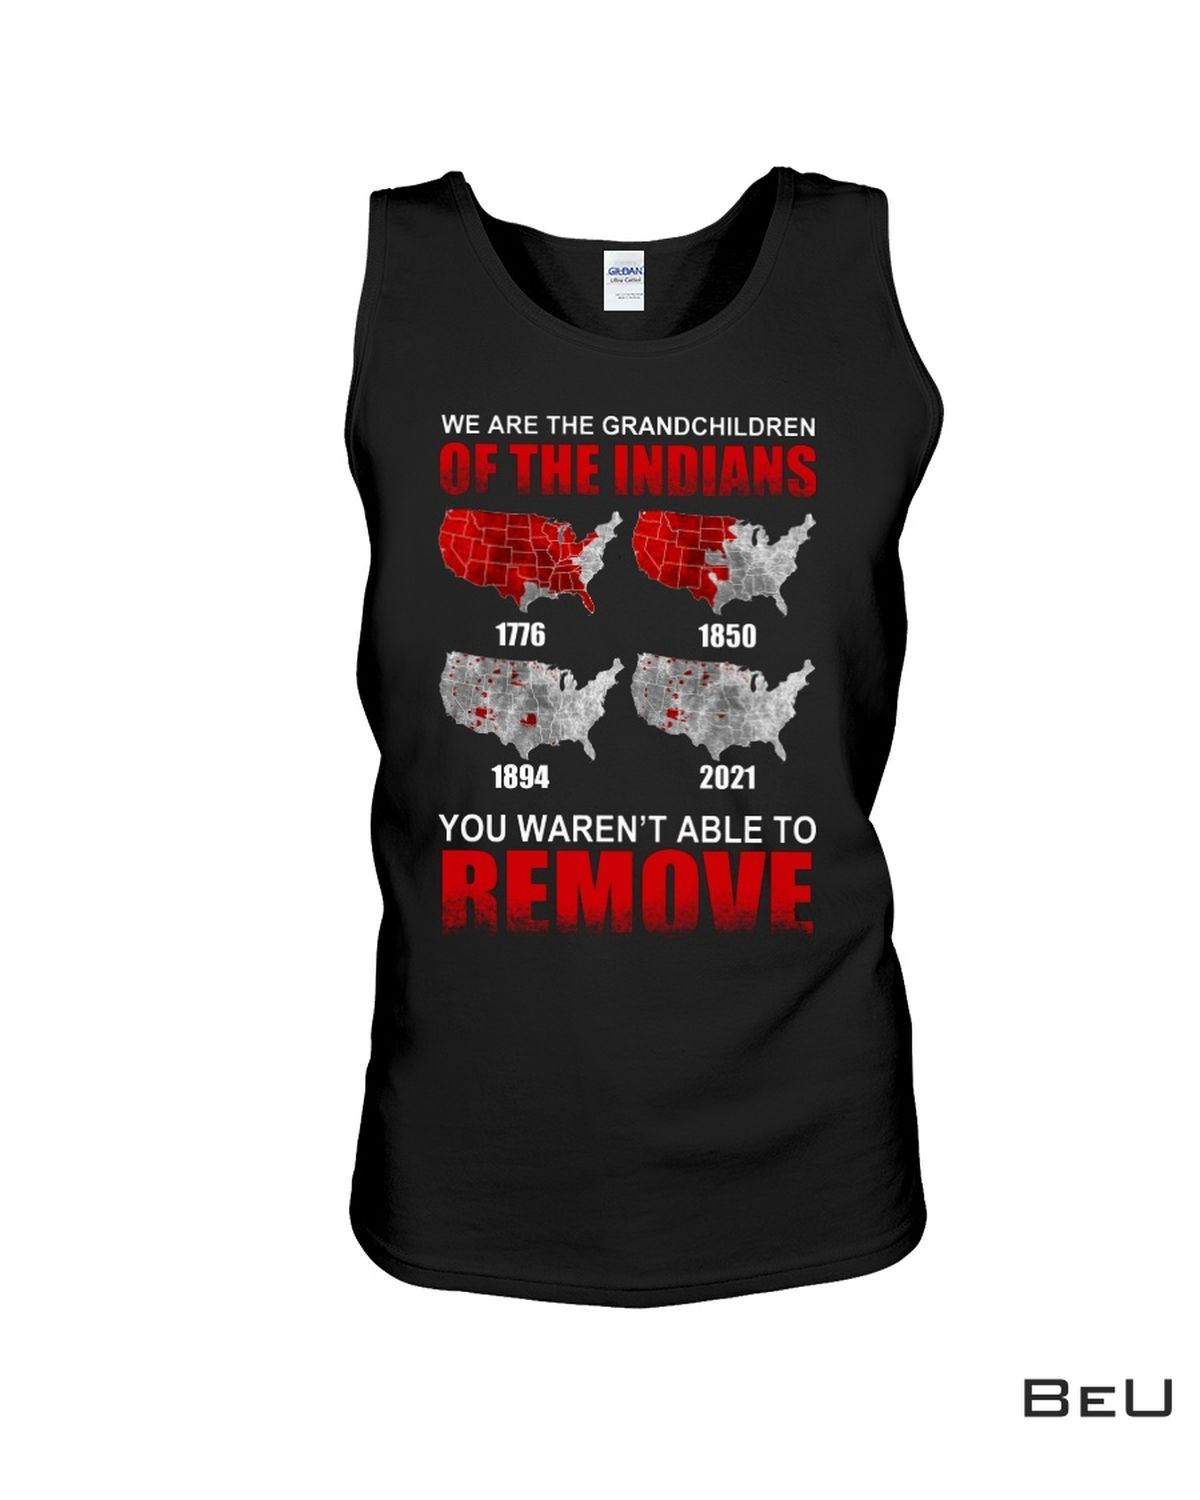 Buy In US We Are The Grandchildren Of The Indians You Weren't Able To Remove Shirt